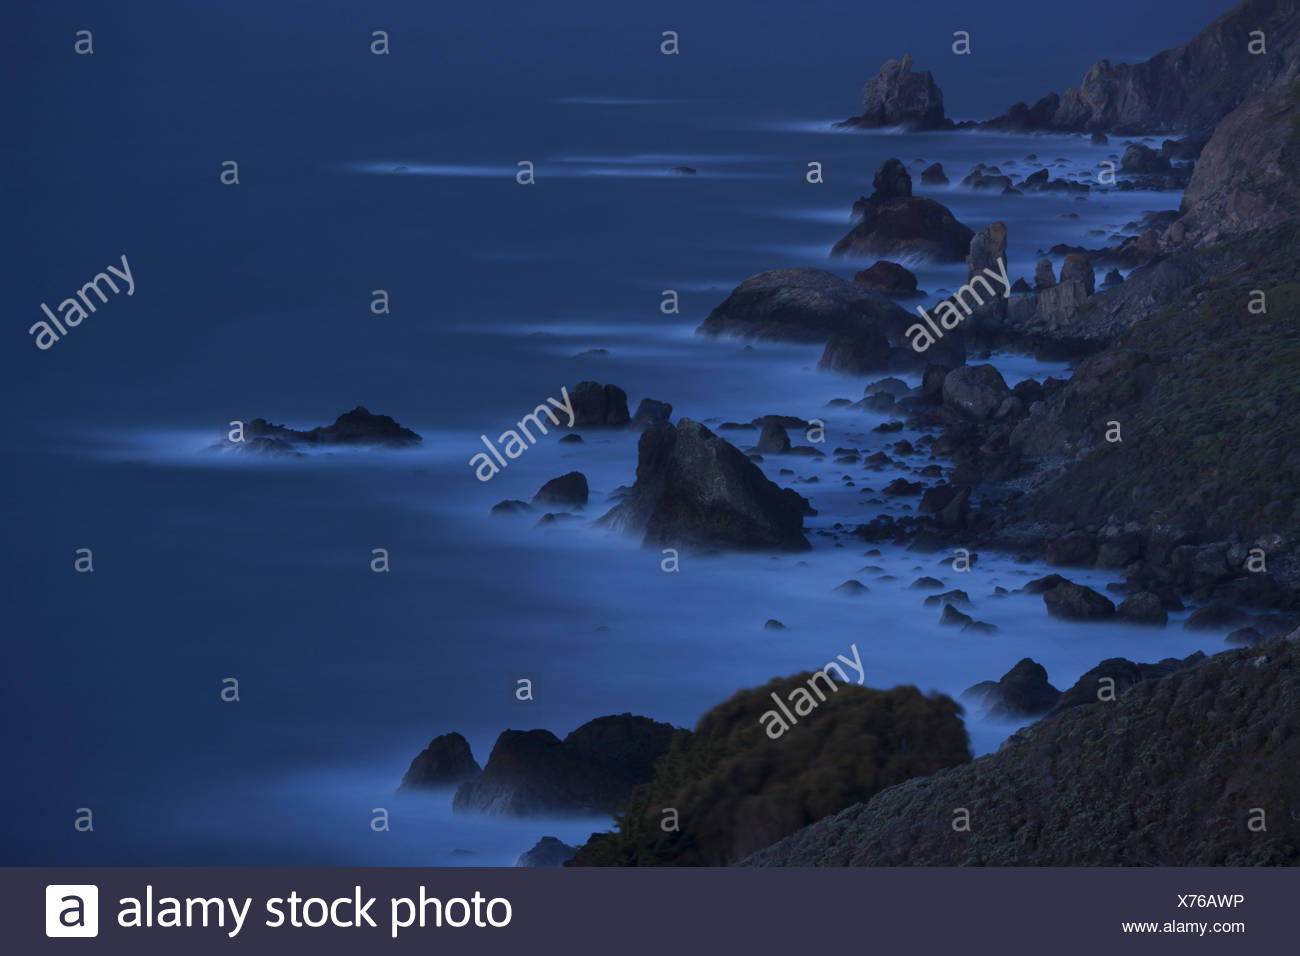 Point Reyes National Seashore coastline, an elevated view along the Pacific Ocean shore in California - Stock Image